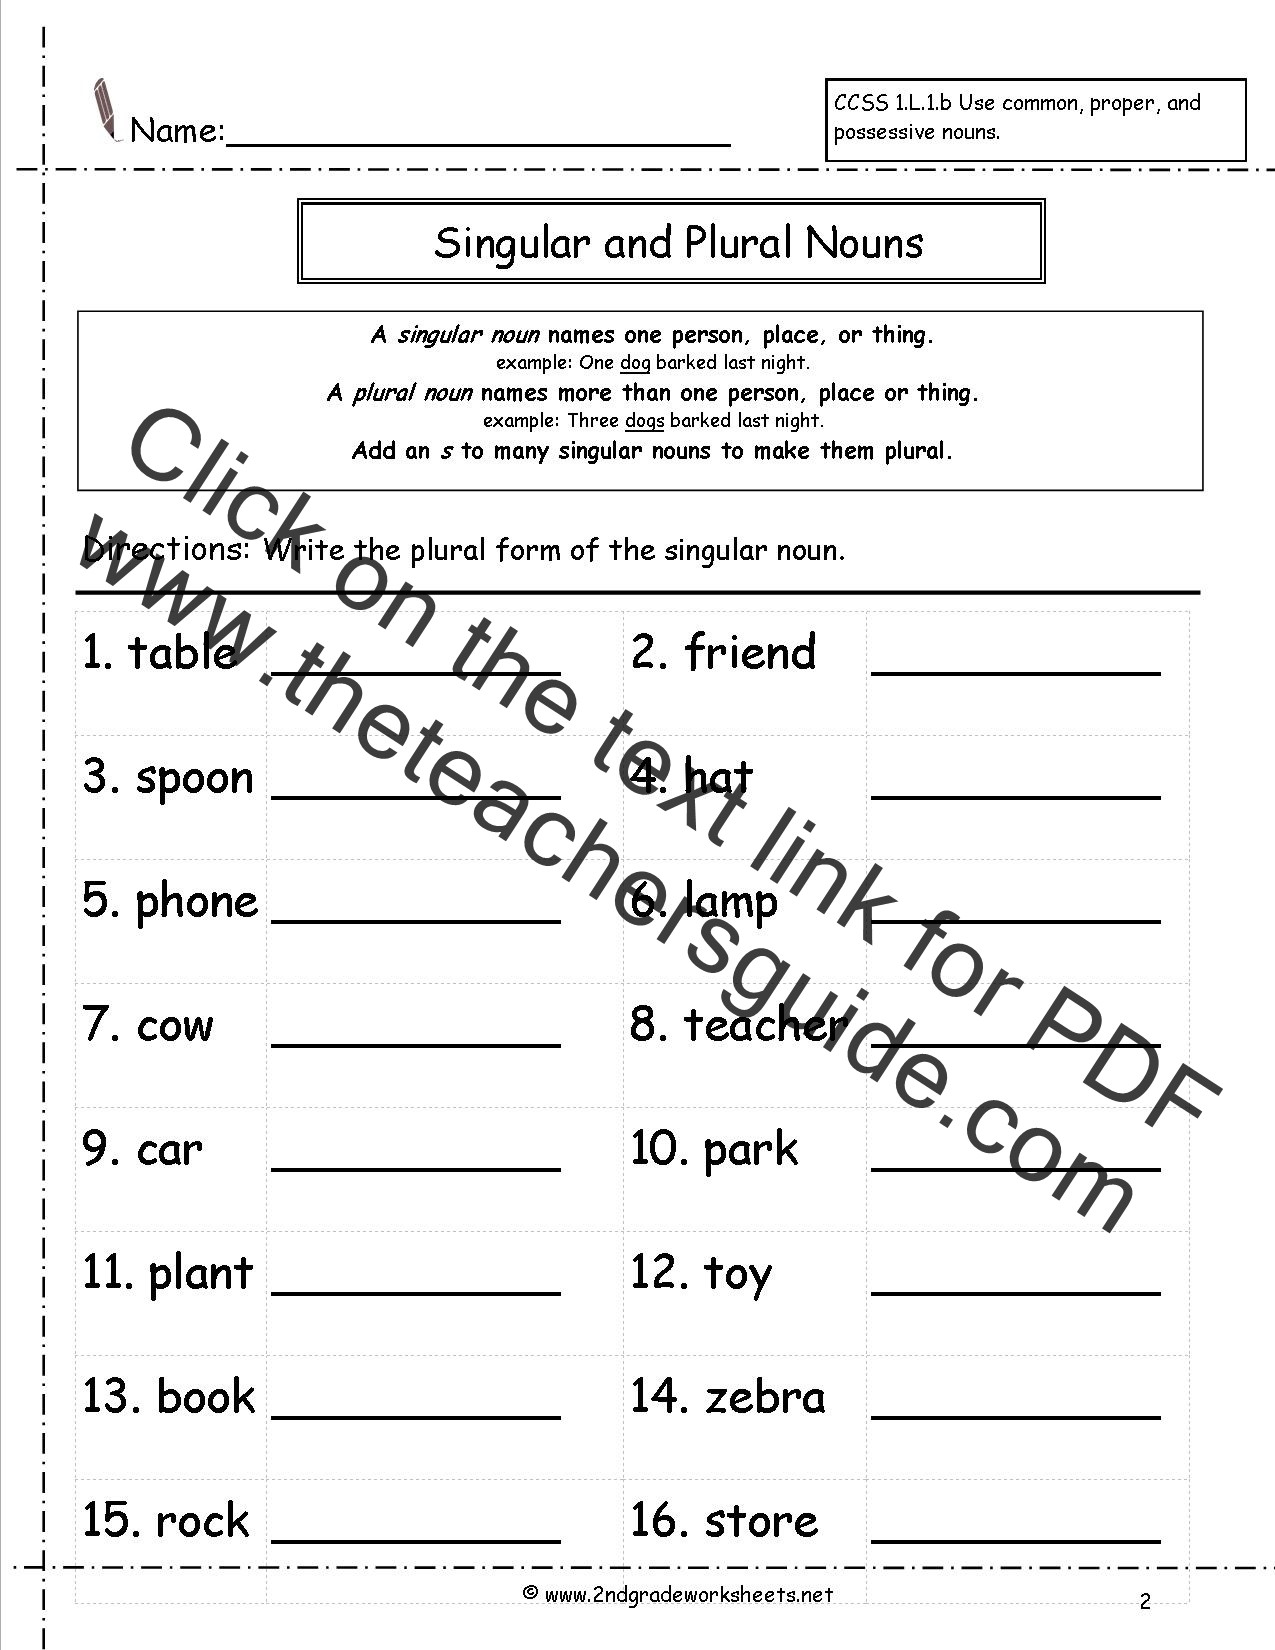 Plurals Worksheet 3rd Grade Singular and Plural Nouns Worksheets